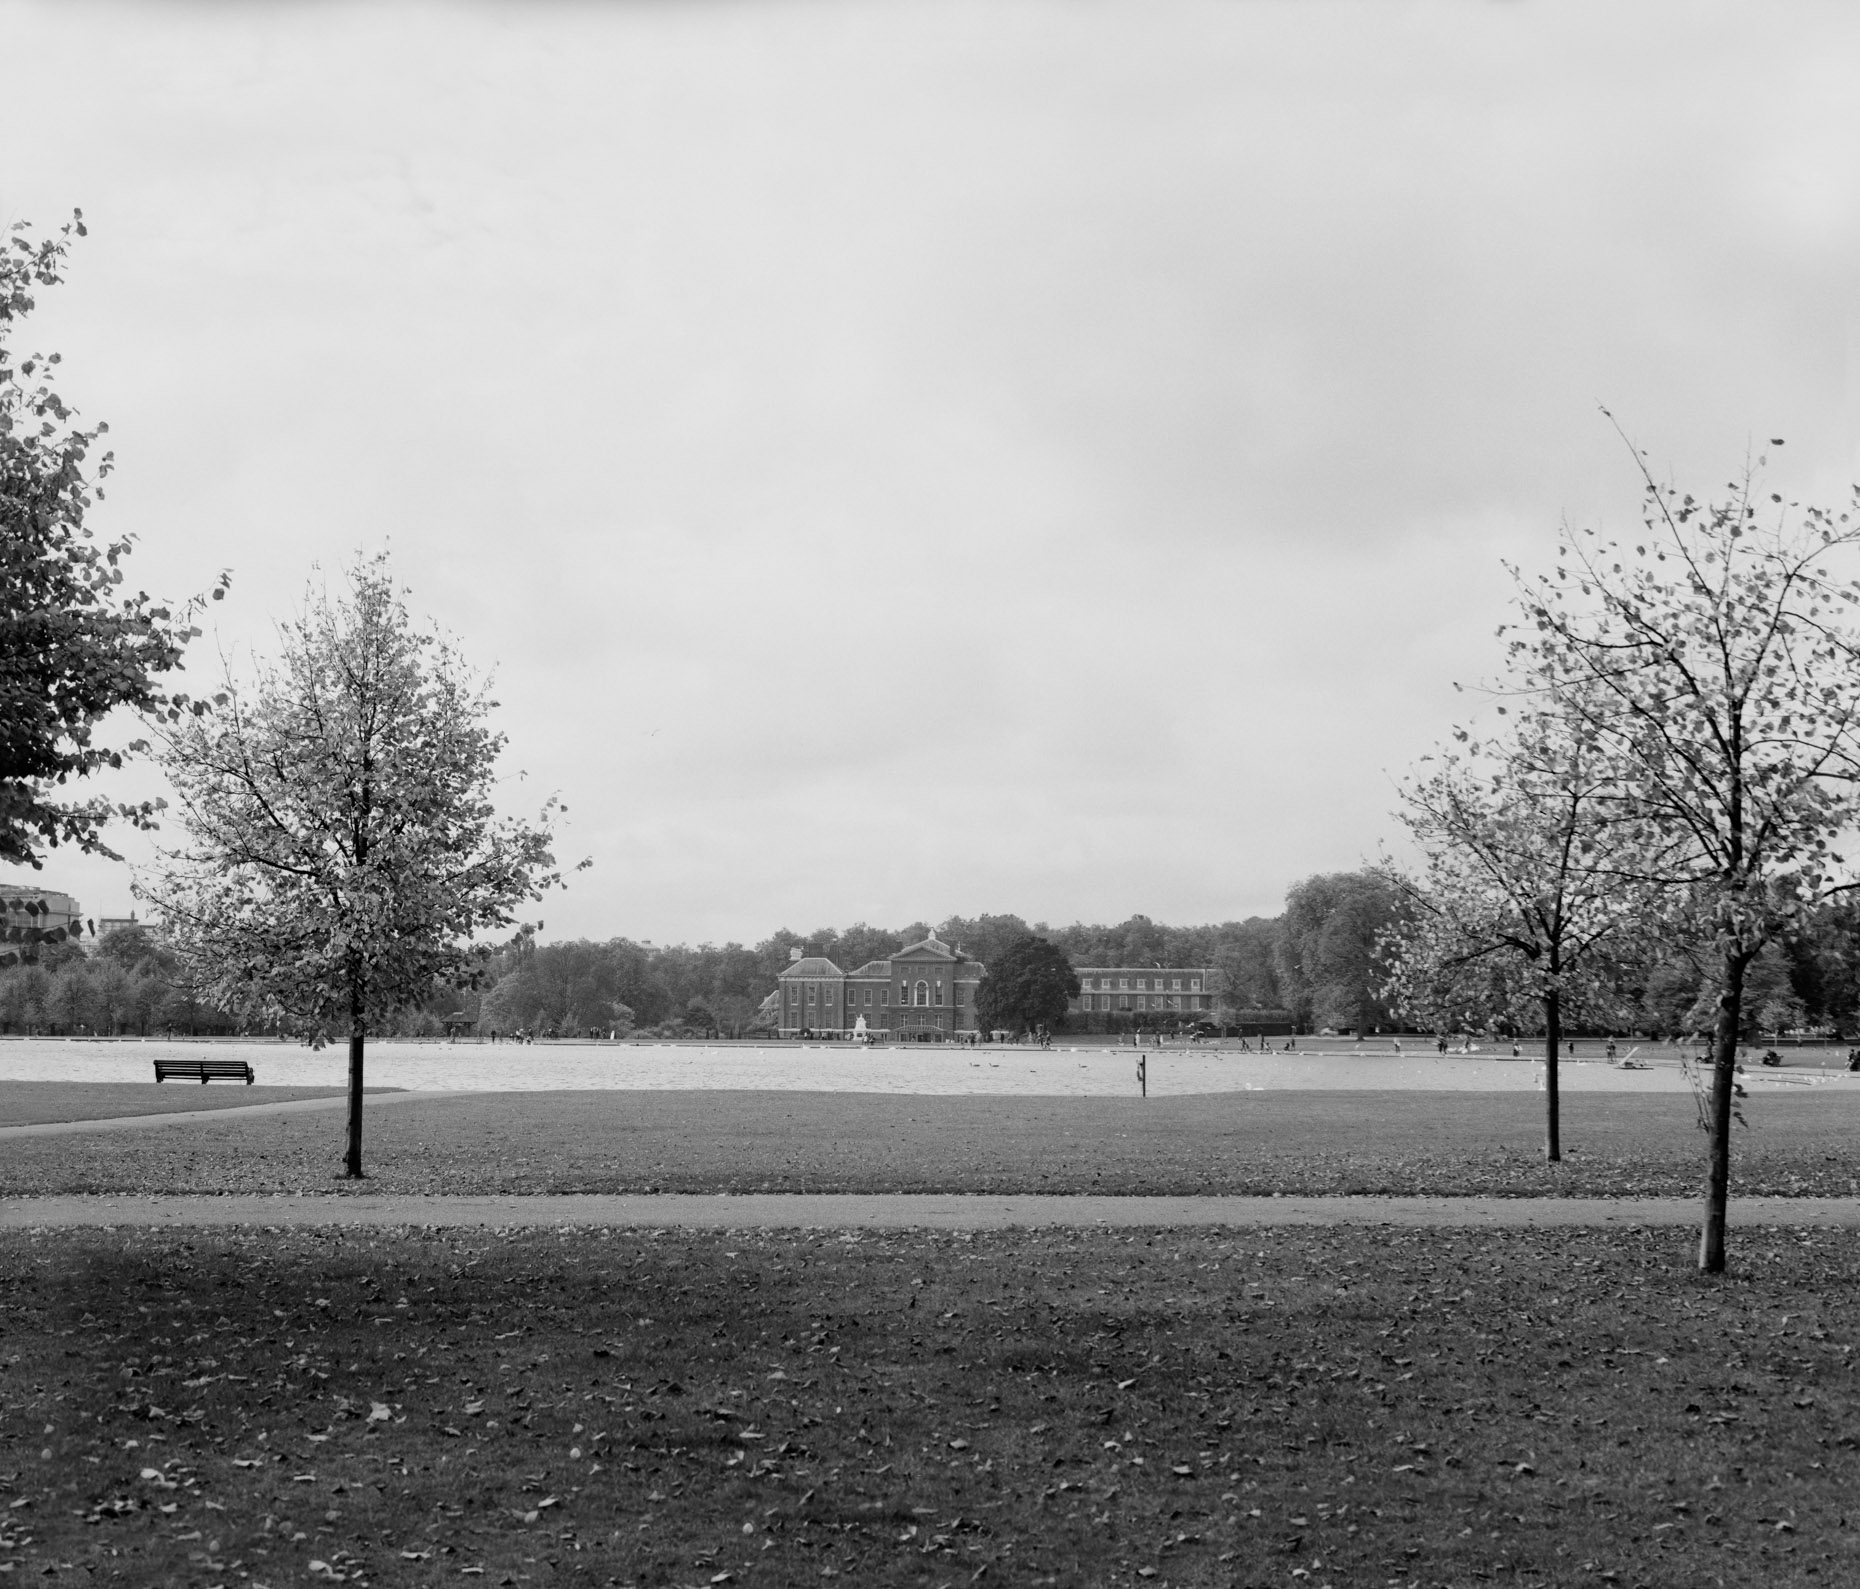 Axel Bernstorff, Collectable limited edition fine photographic art prints. View across the Round Pond to Kensington Palace. Royal Residence in the Royal Borough of Kensington and Chelsea in London, England.